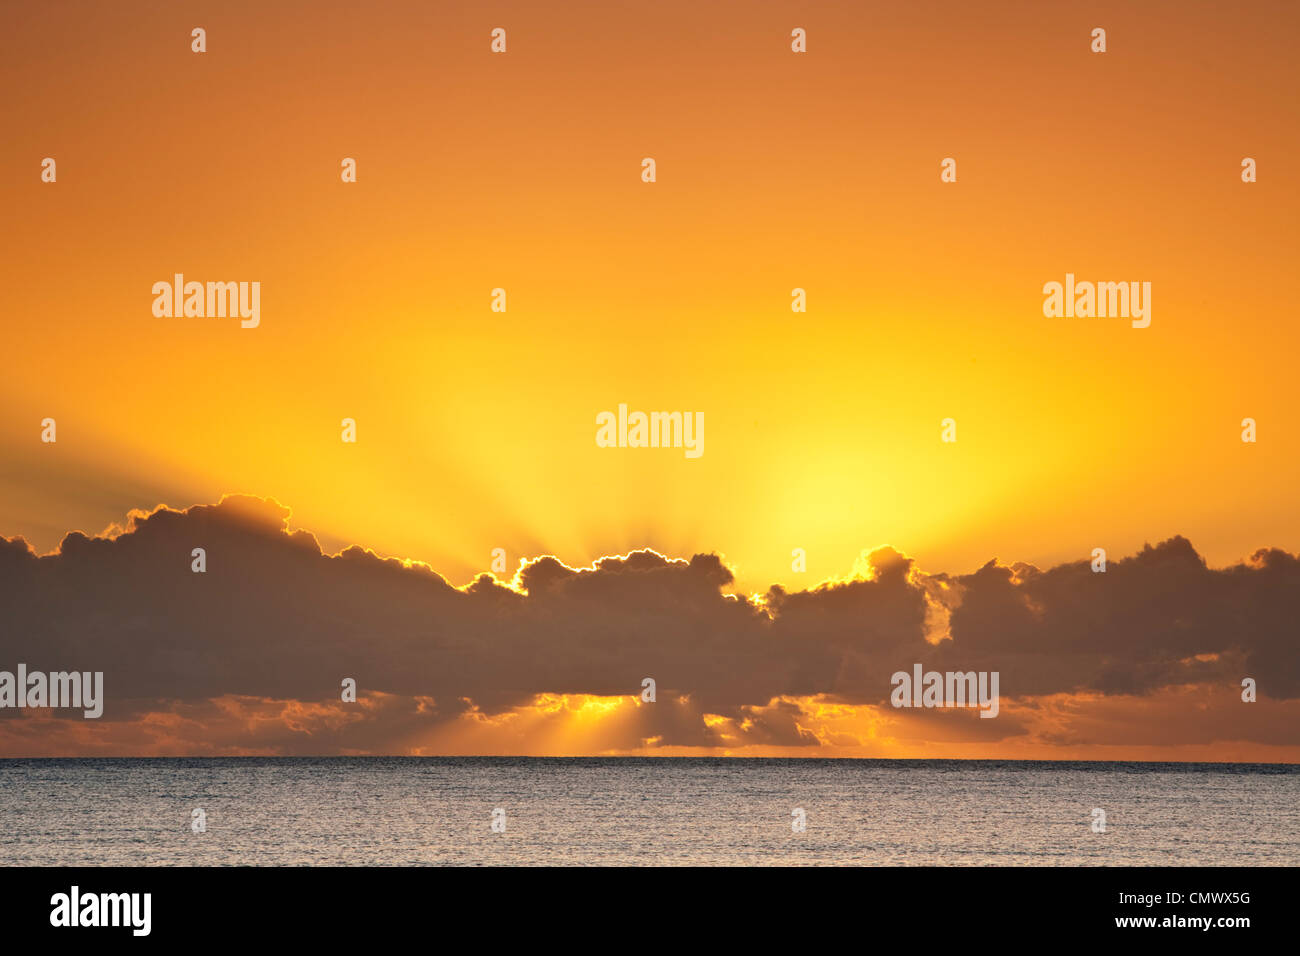 Sunrise over the Coral Sea. Kewarra Beach, Cairns, Queensland, Australia - Stock Image